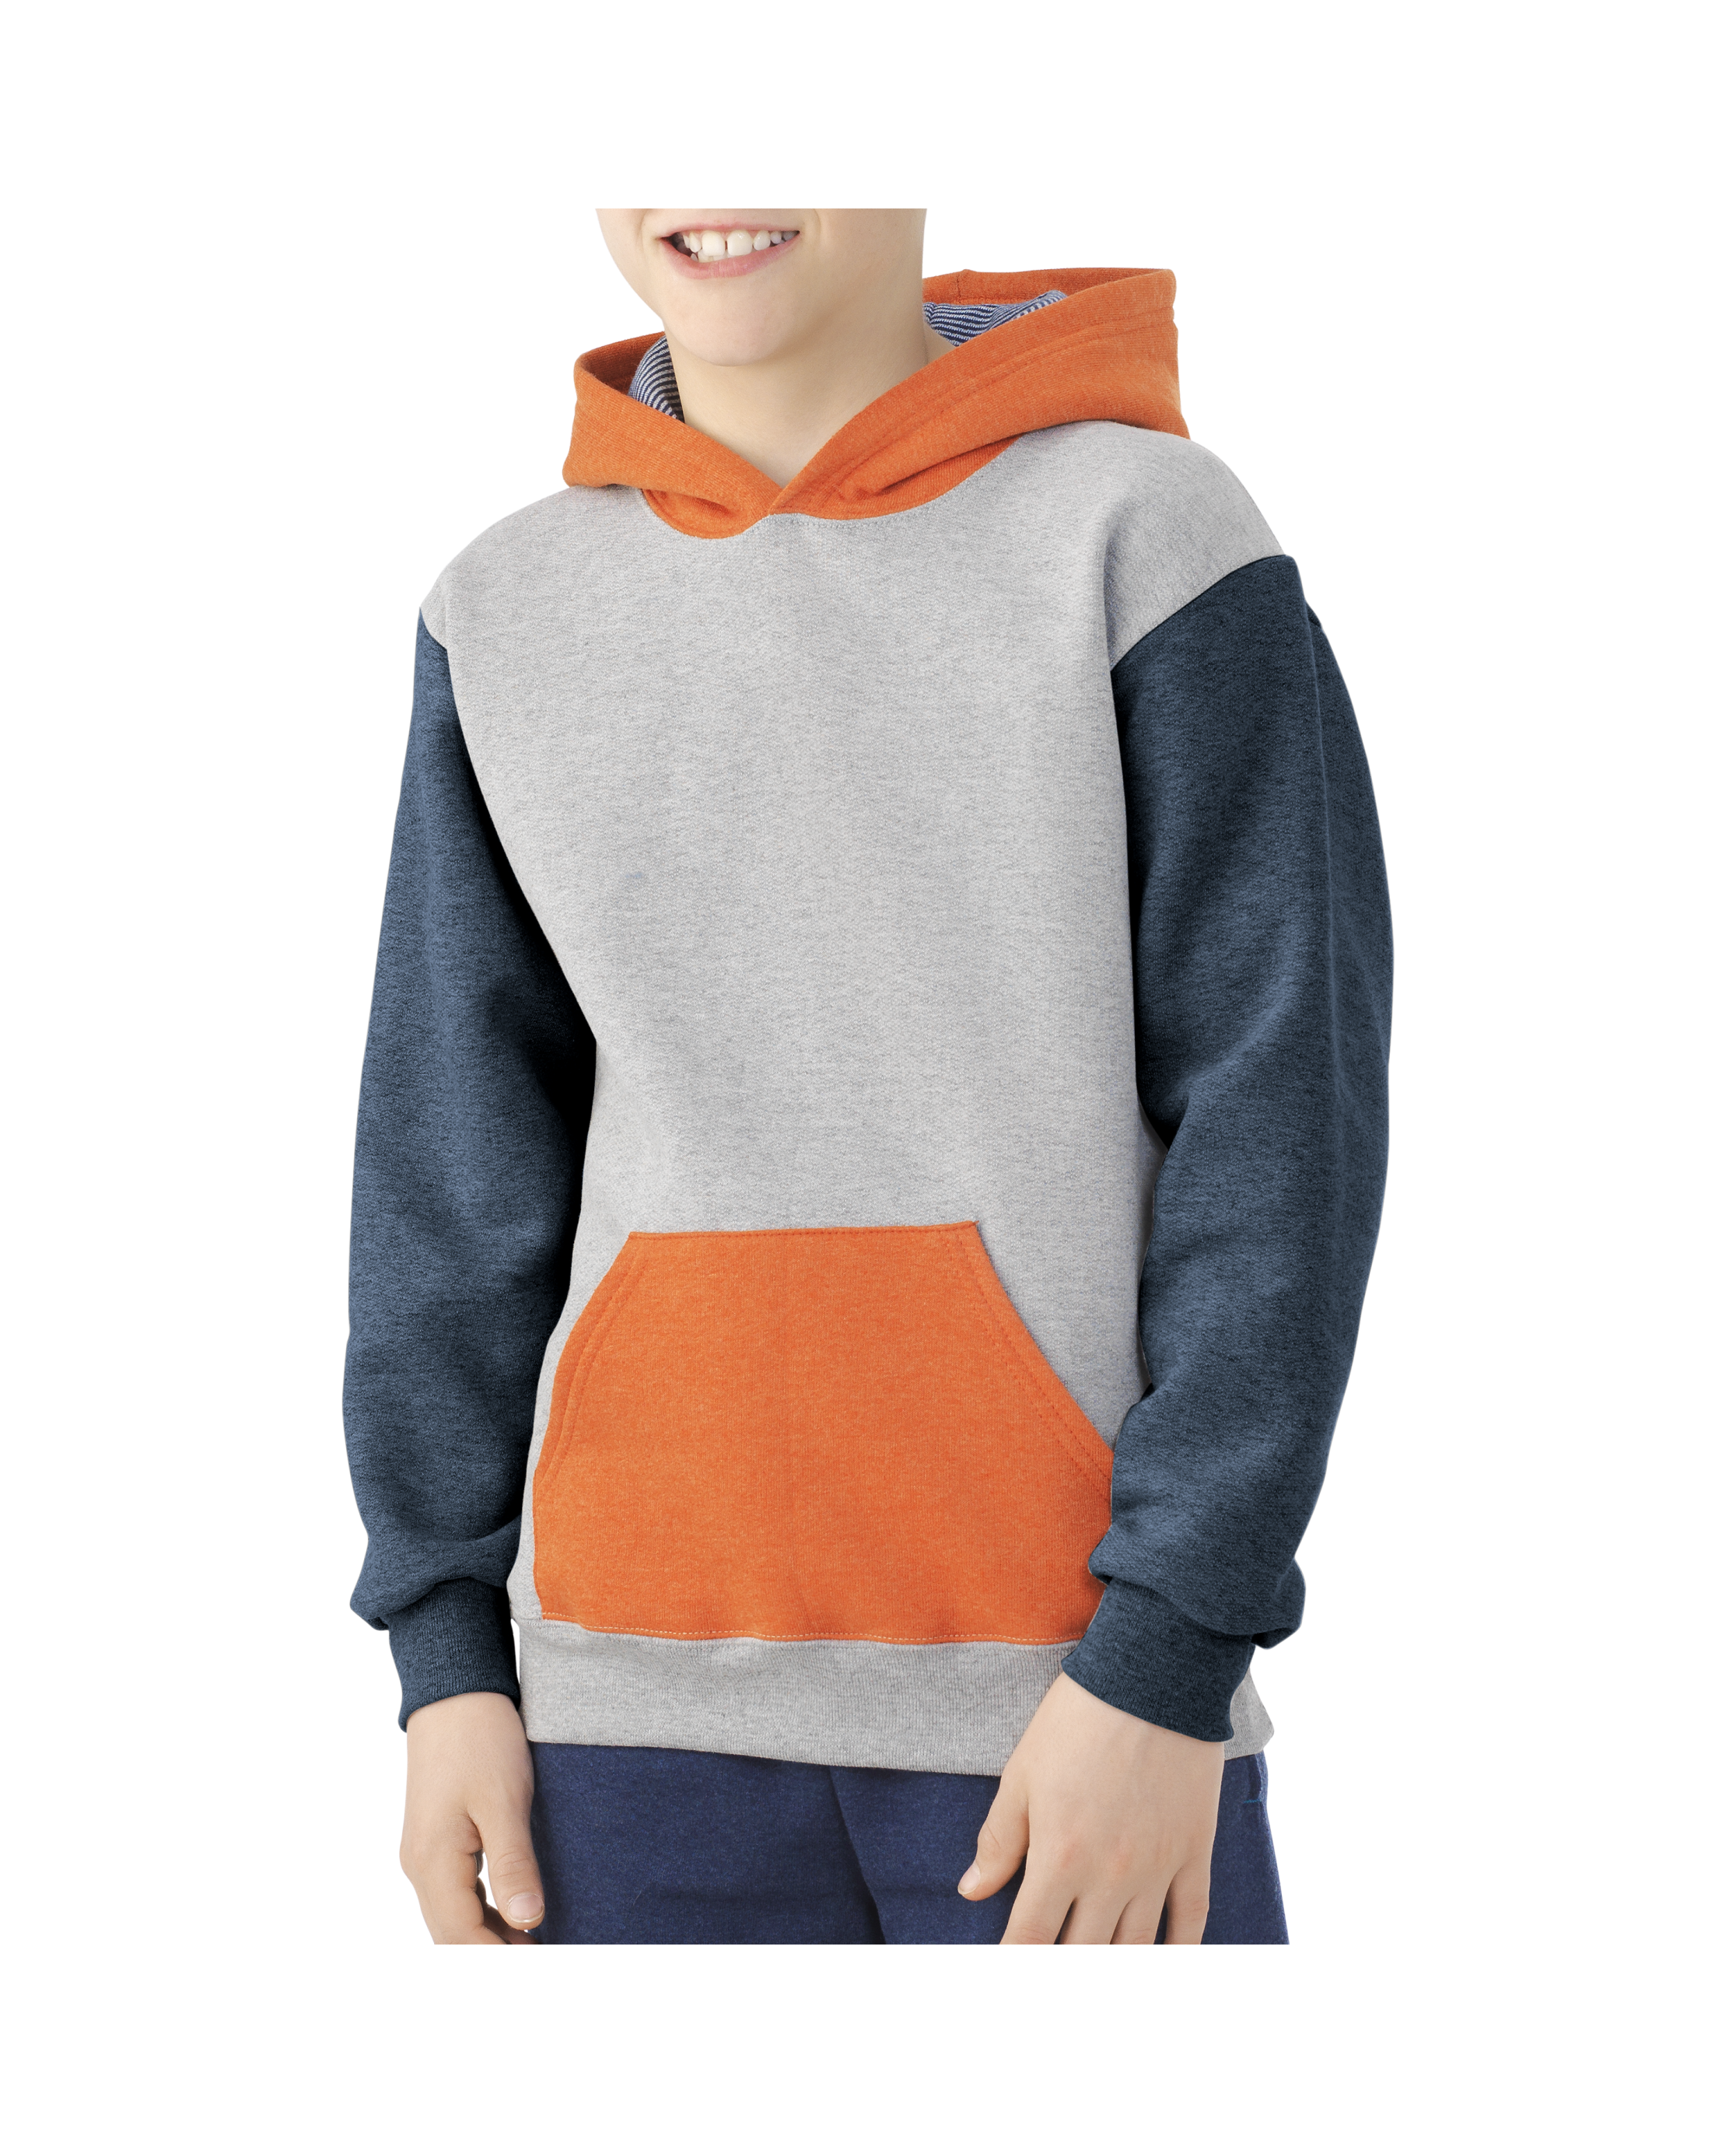 Boys\u0027 Fleece Hoodie Sweatshirt, 1 Pack